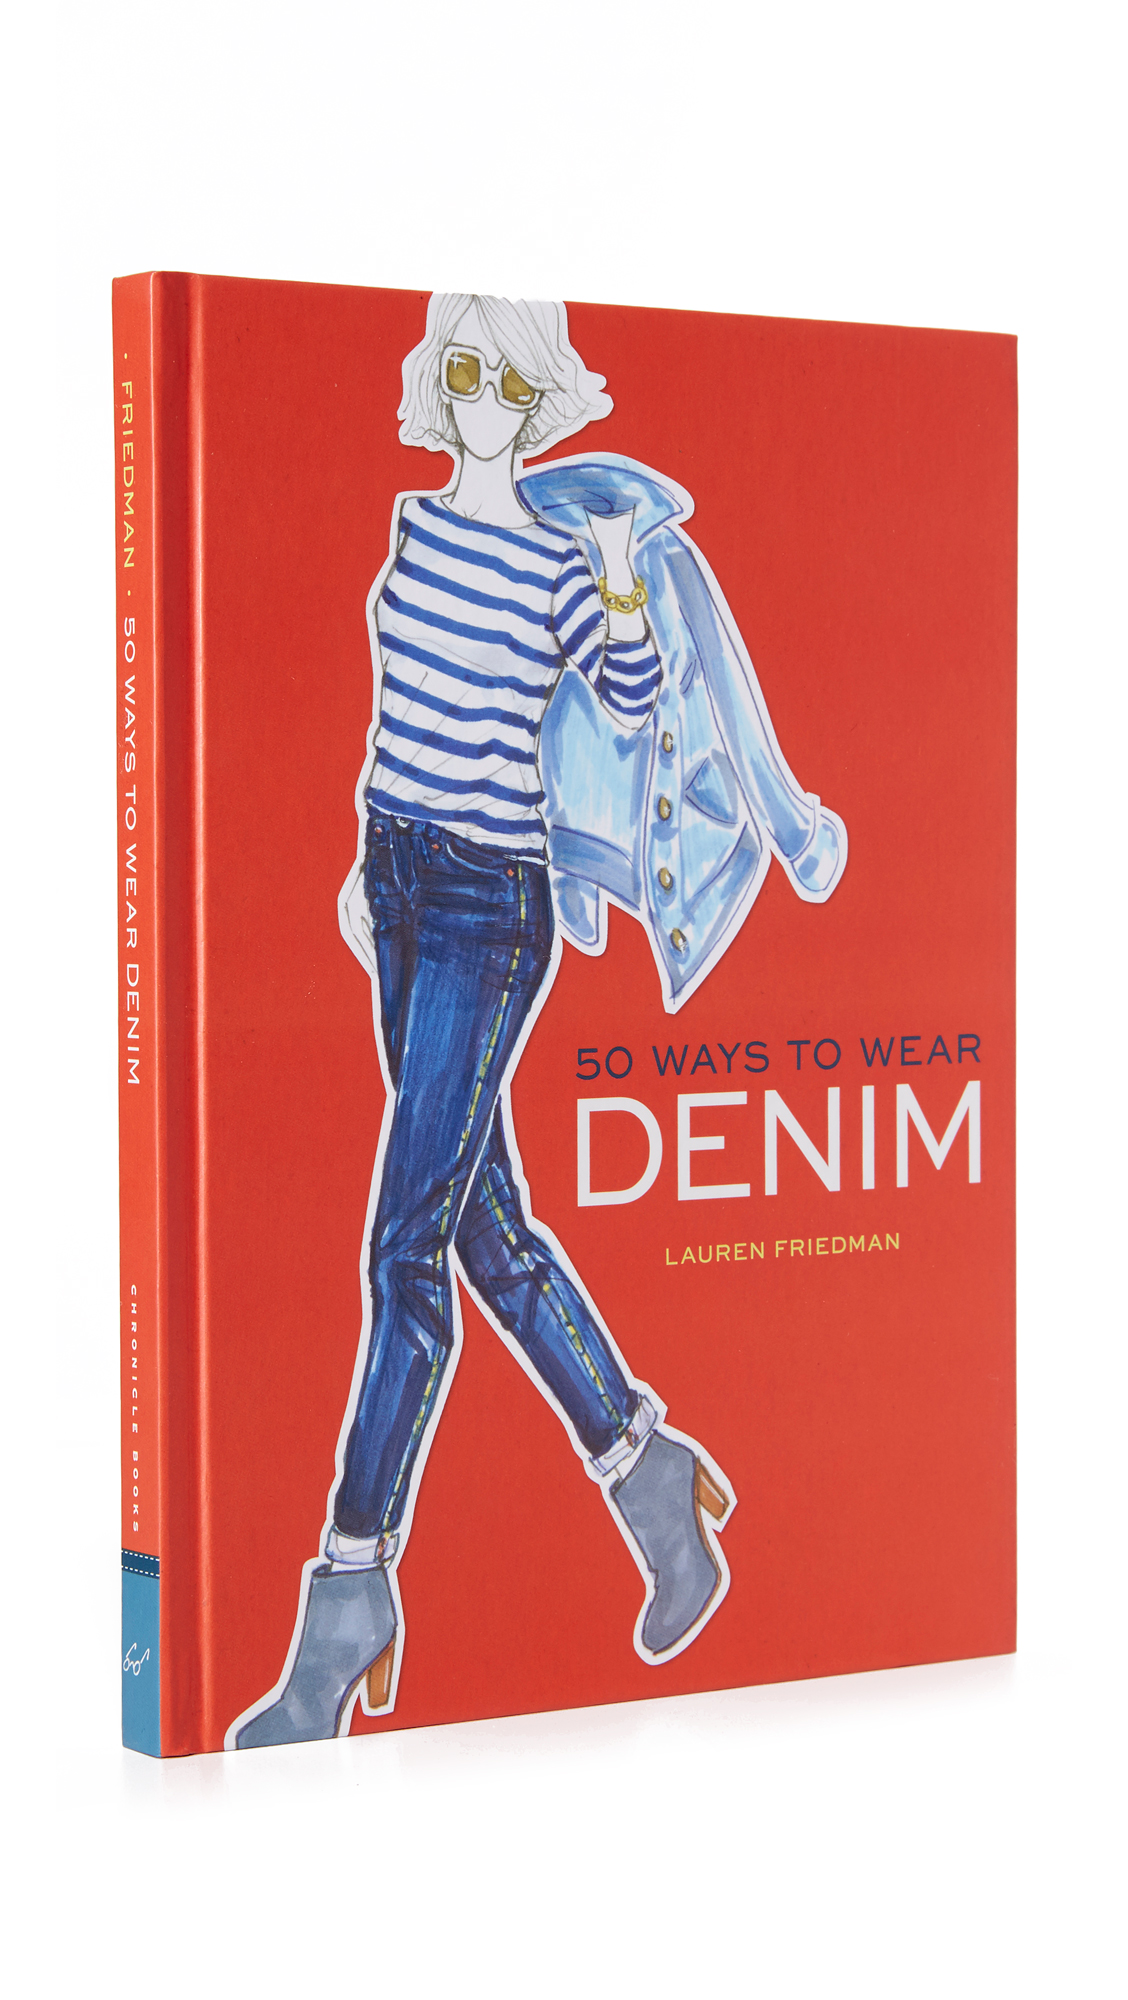 Books With Style 50 Ways To Wear Denim - No Color at Shopbop